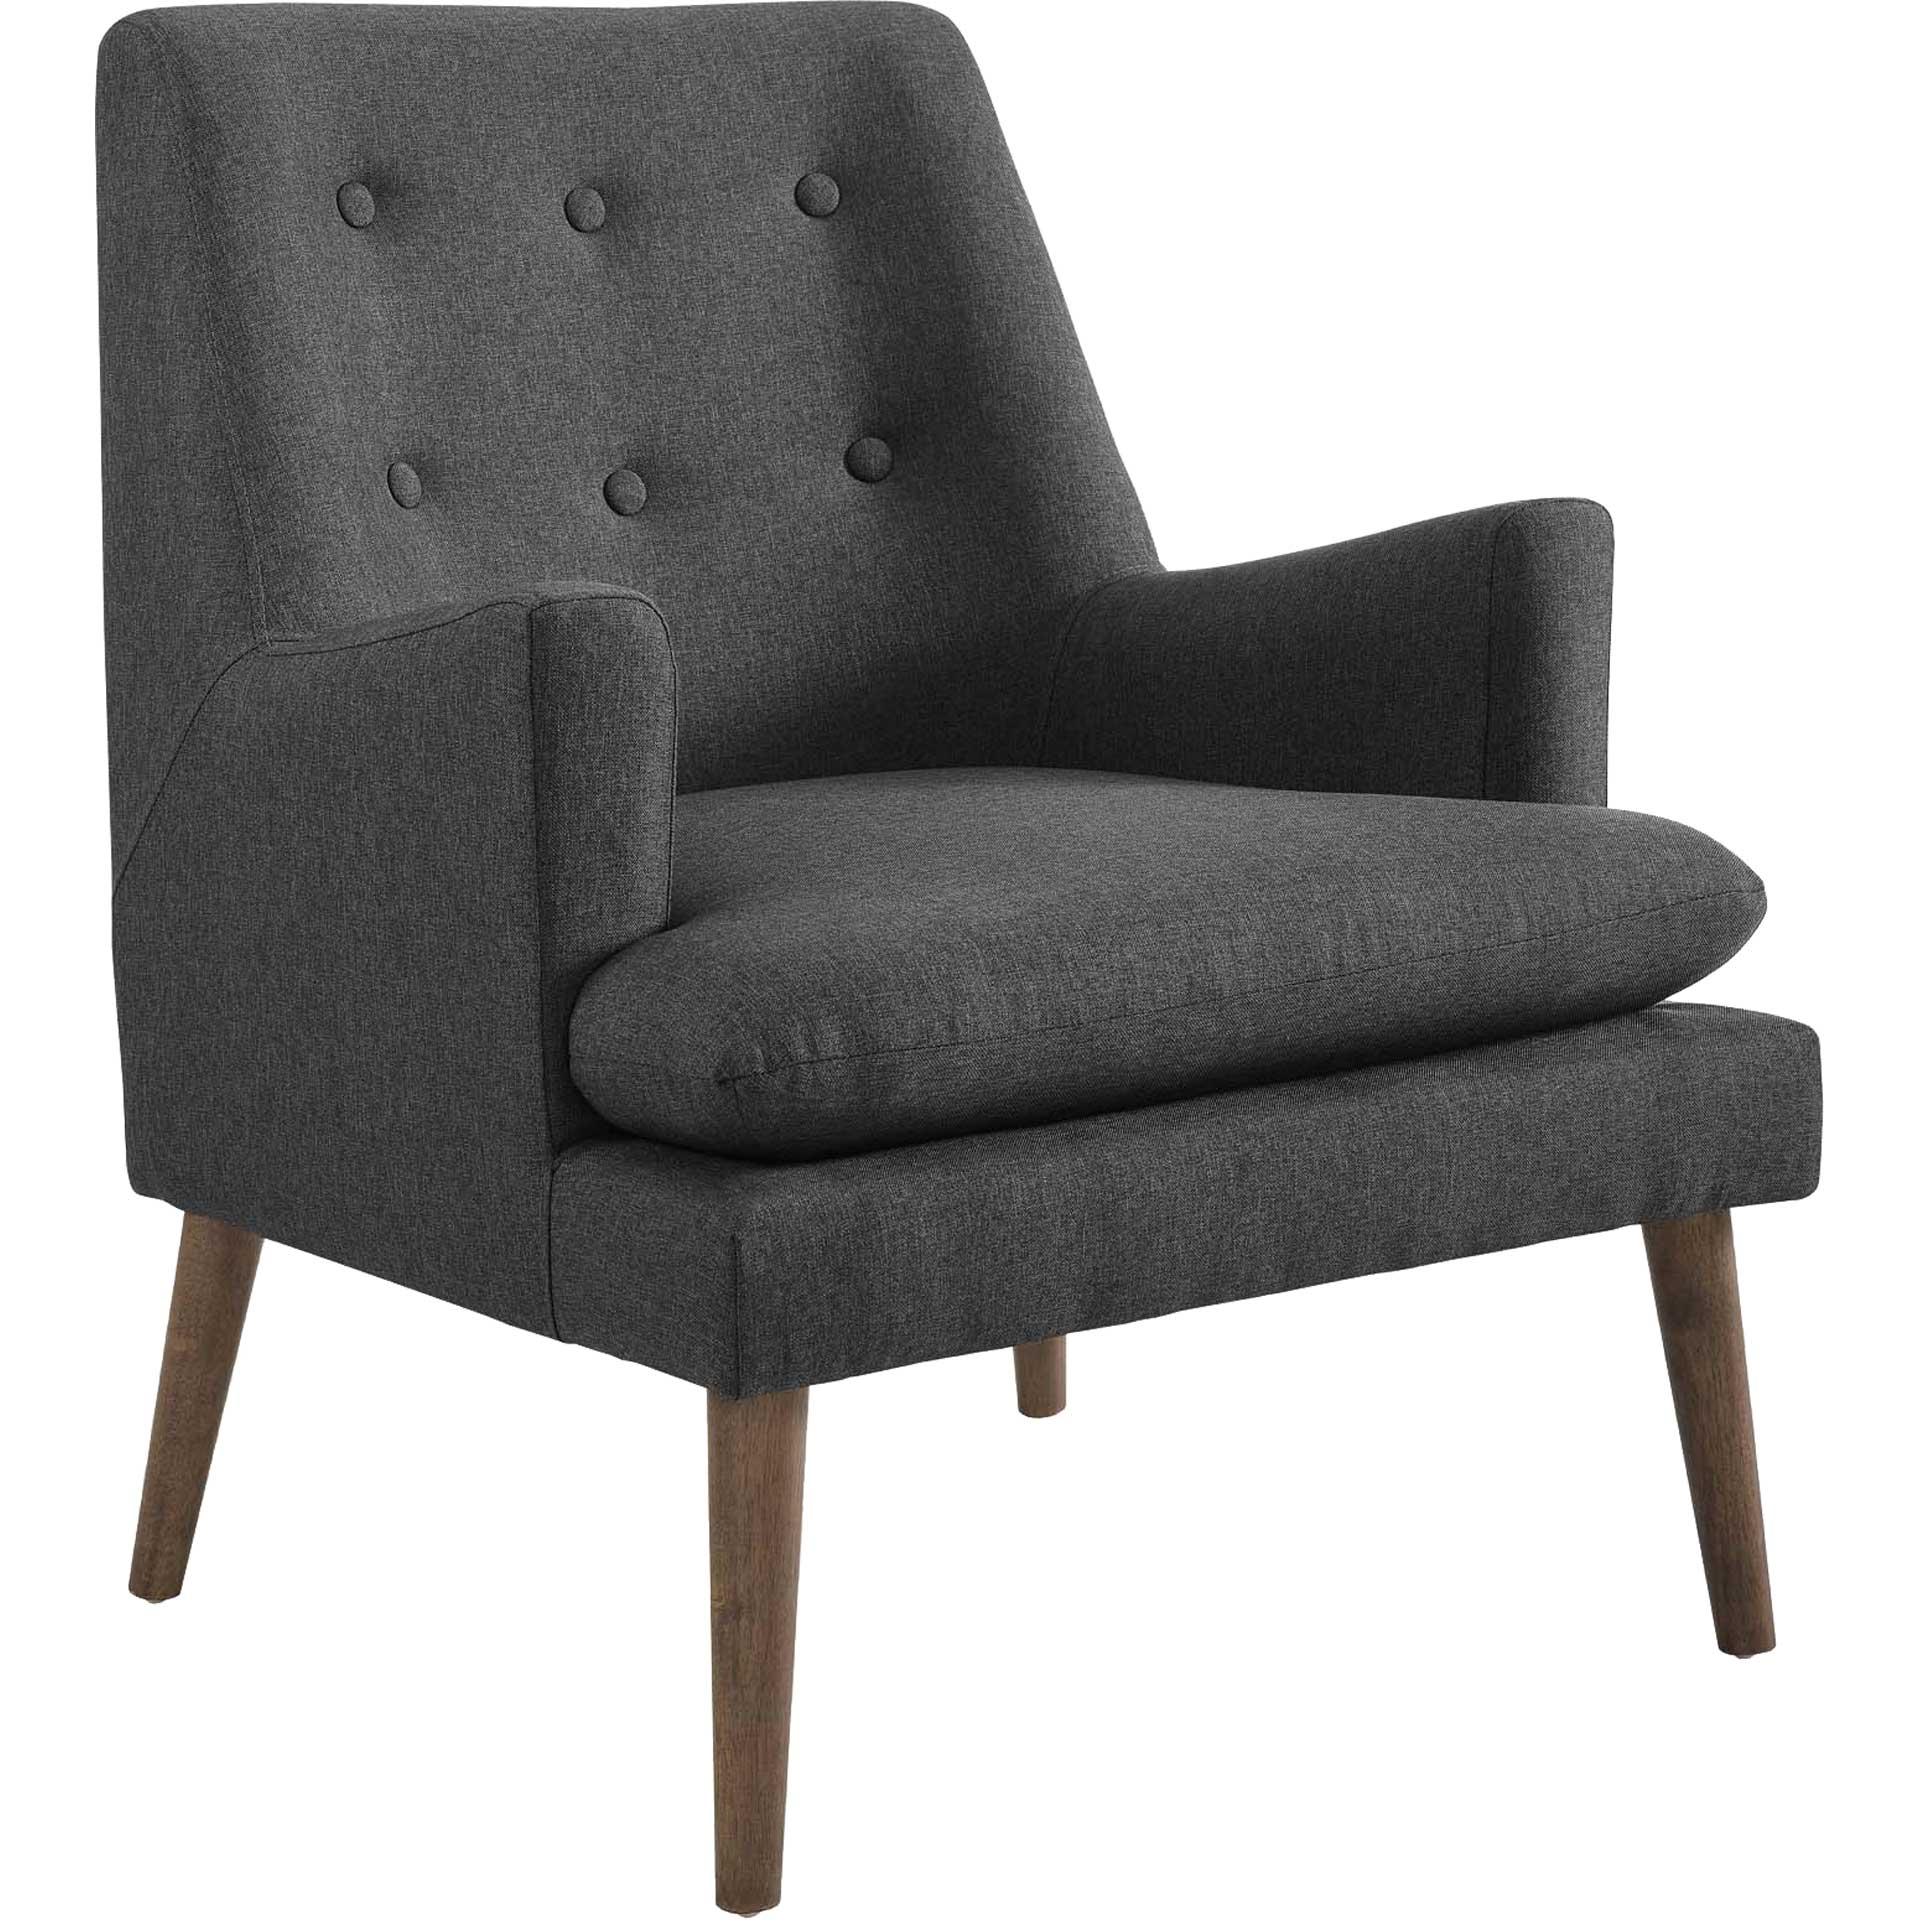 Astounding Lucas Upholstered Lounge Chair Gray Ocoug Best Dining Table And Chair Ideas Images Ocougorg